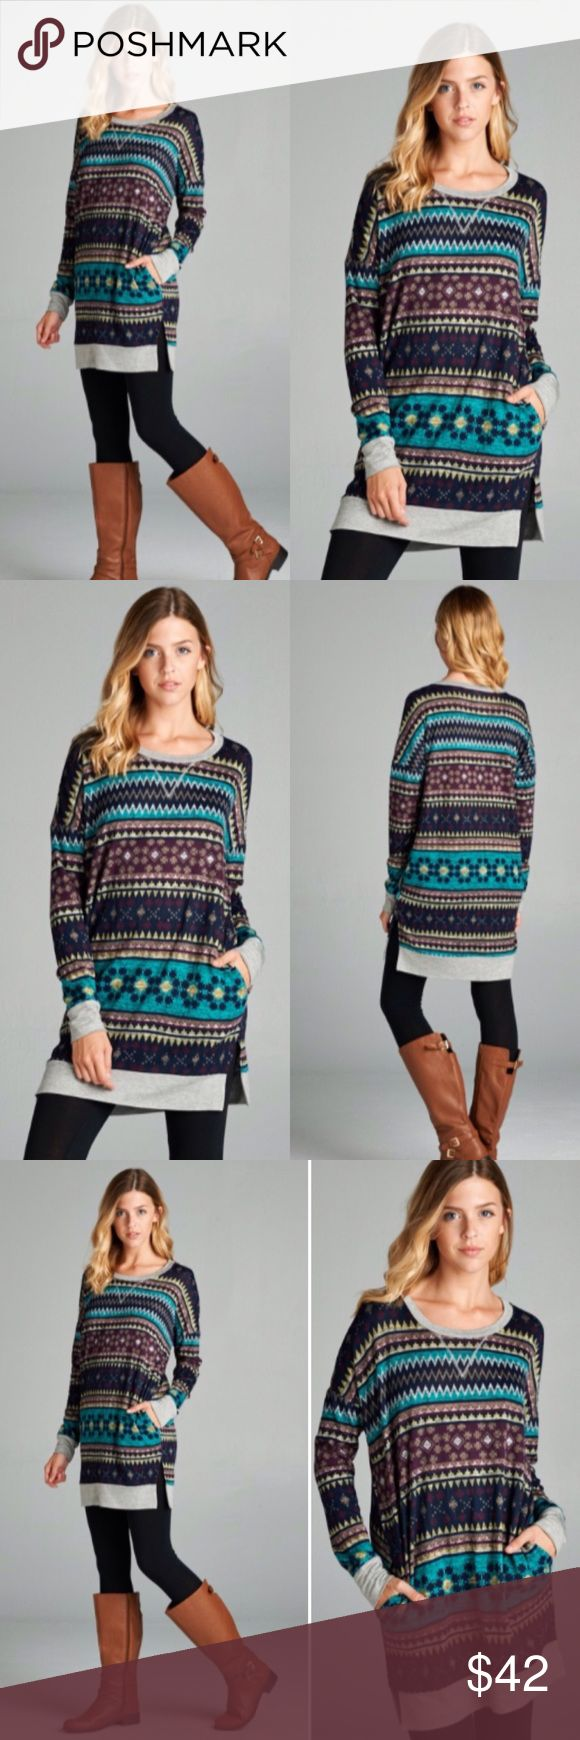 ❣️NEW❣️ Winter Navajo Print Warm Long Tunic Top Adorable and brand new! So perfect for the season! S M L XL Tops Tunics